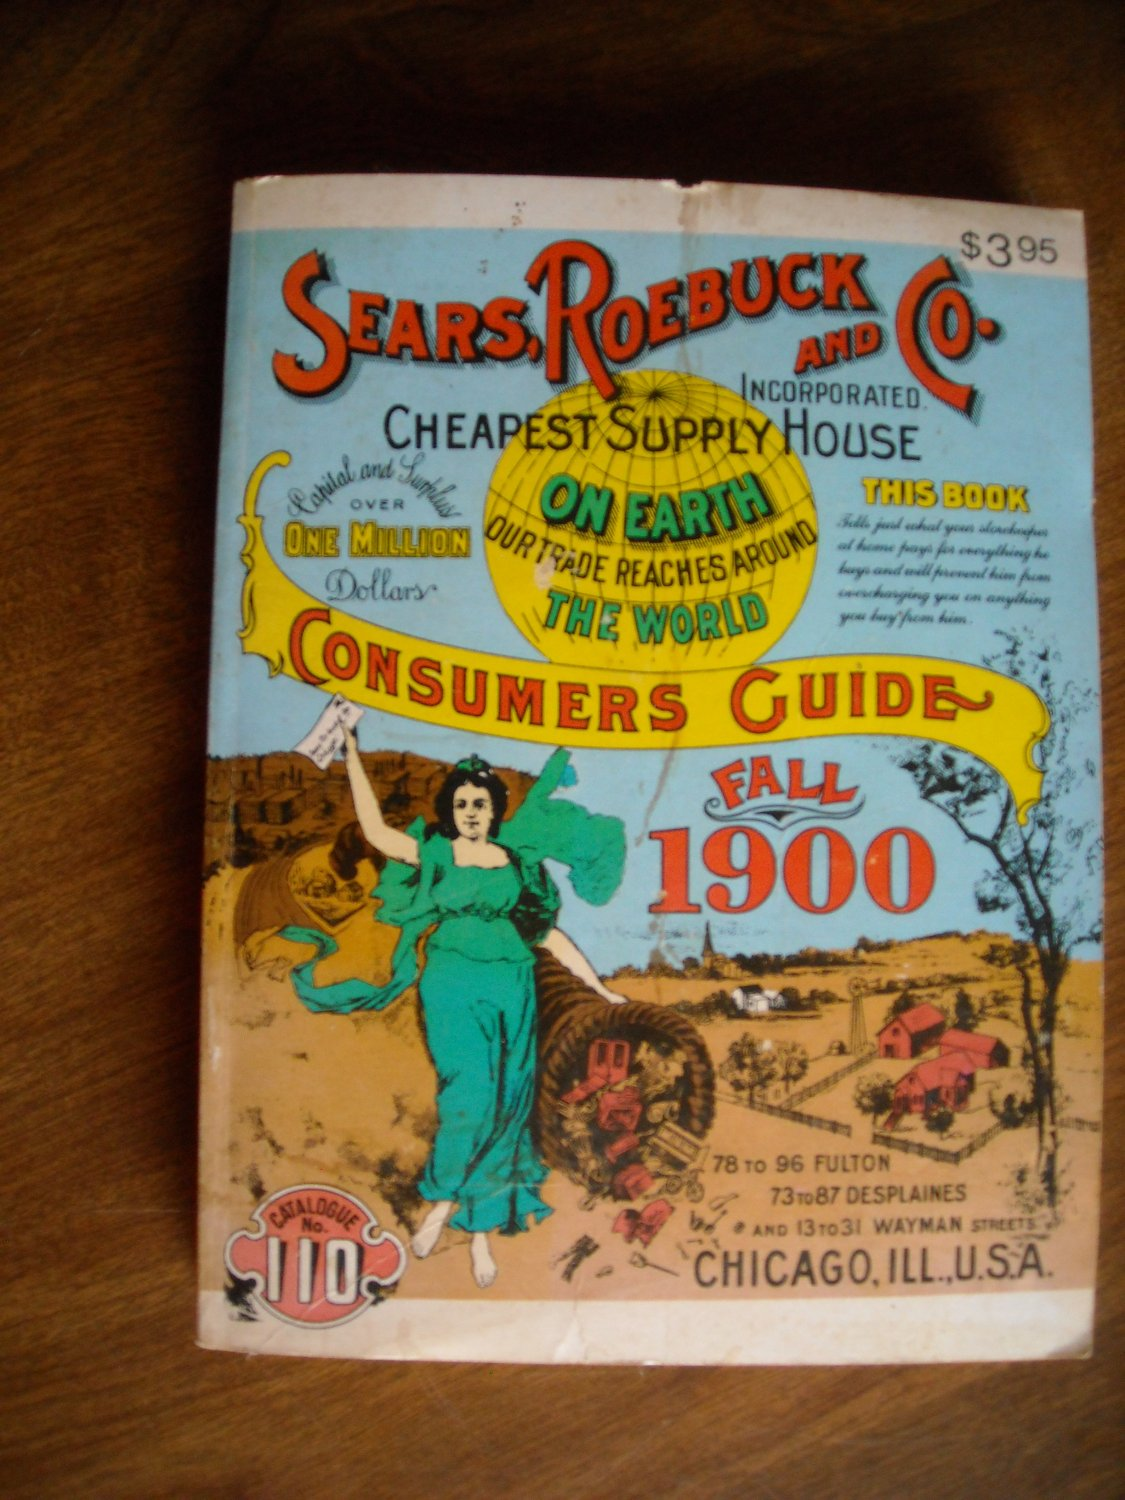 Sears, Roebuck and Co. Consumers Guide: Fall 1900 (Miniature Reproduction) (1970) (BB9)